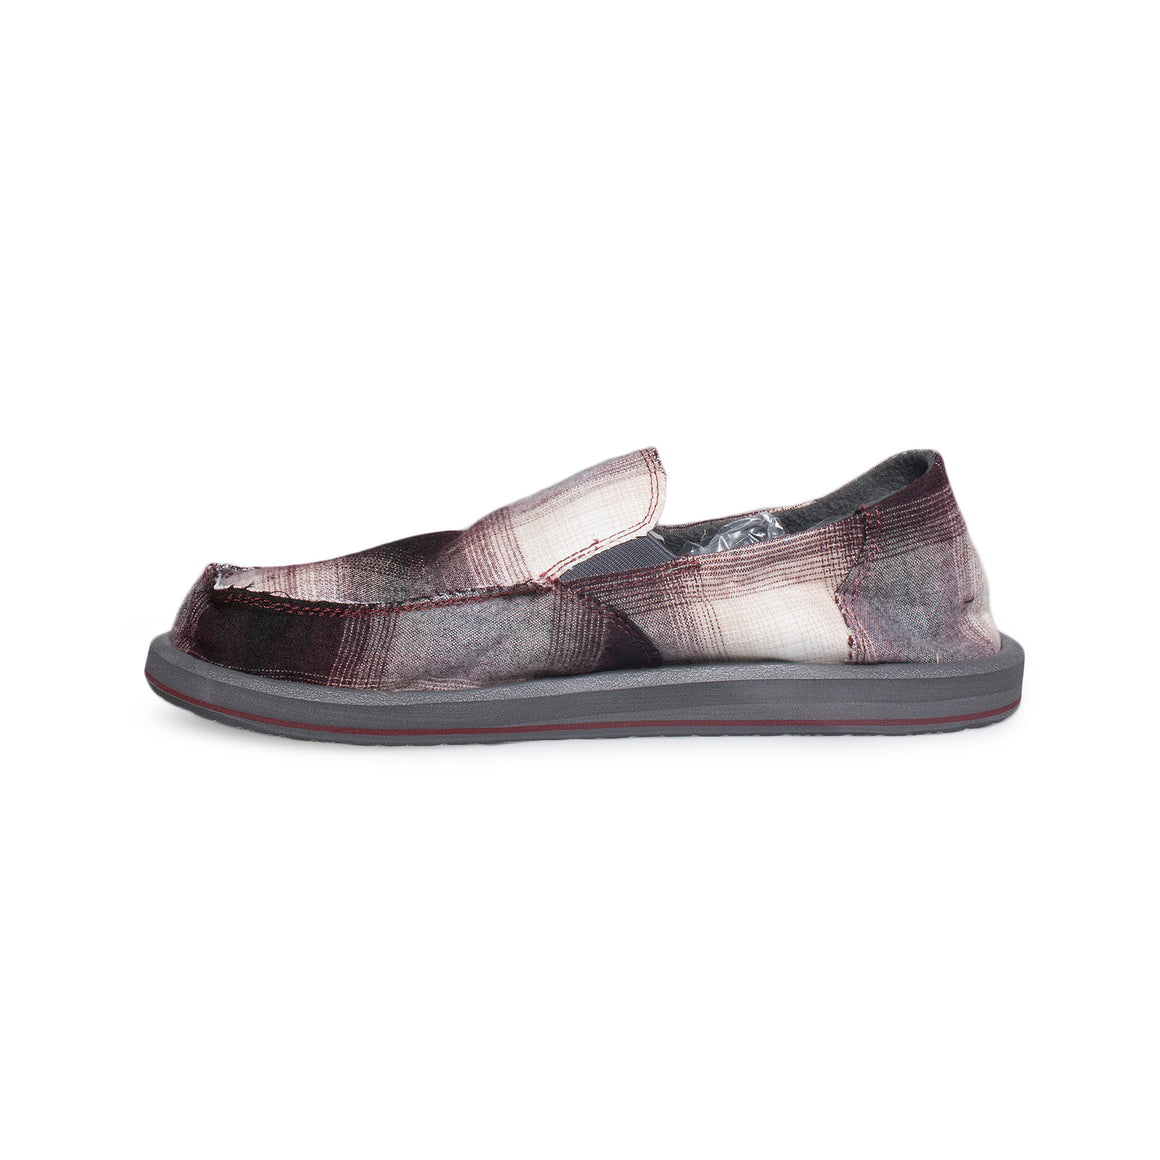 SANUK Coupe De Chille Burgundy Shoes - Men's